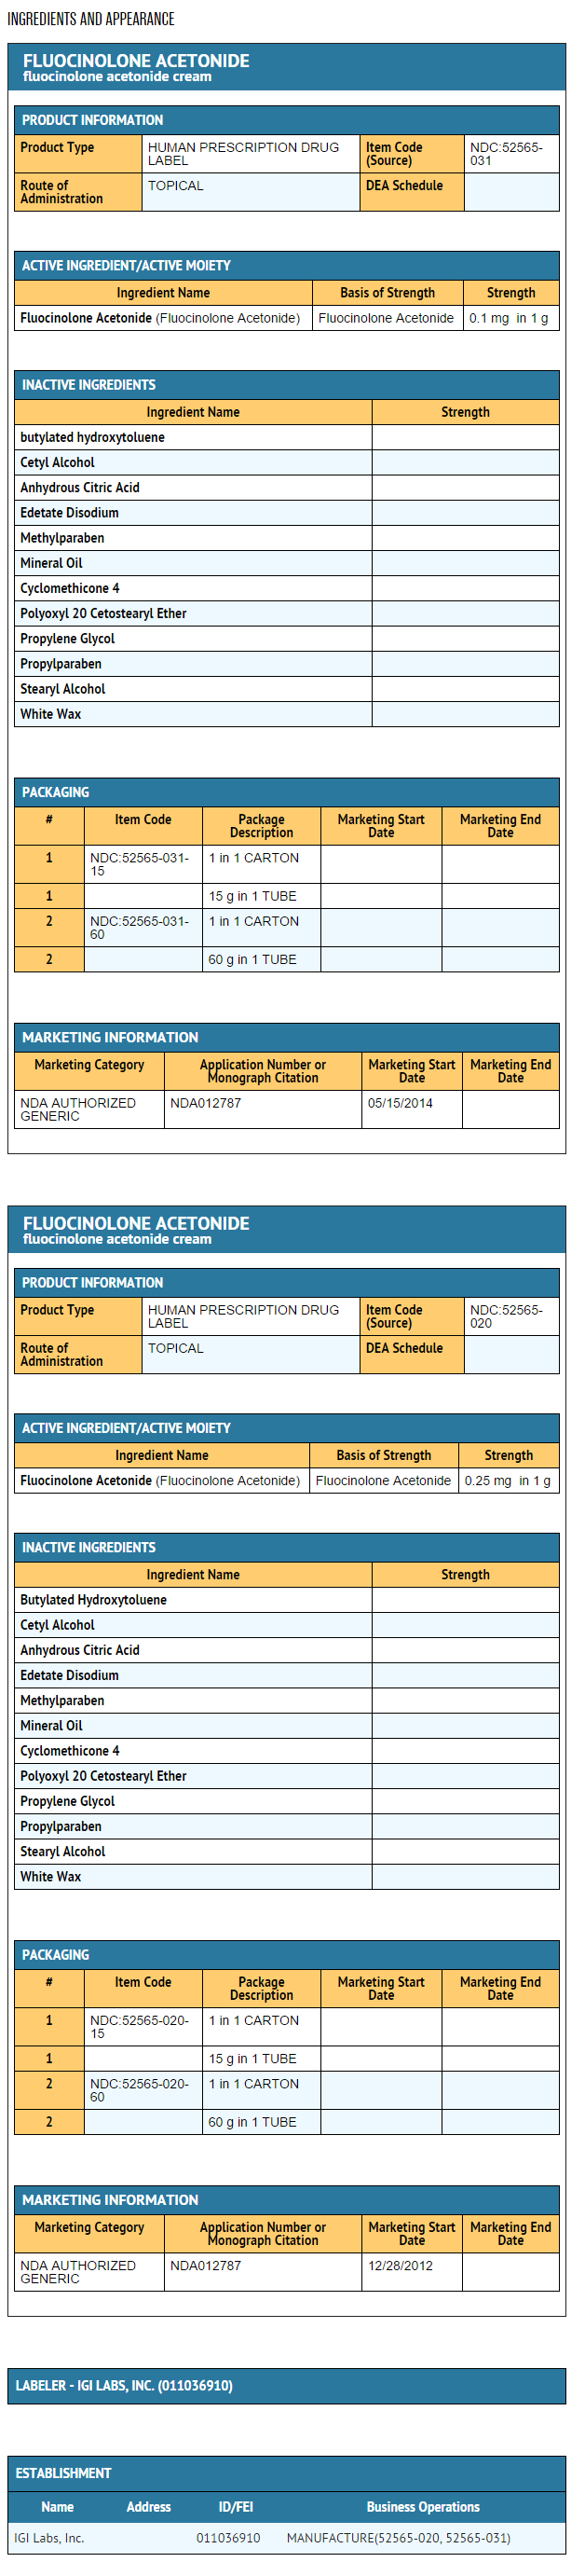 Fluocinolone ingredients and appearance.png